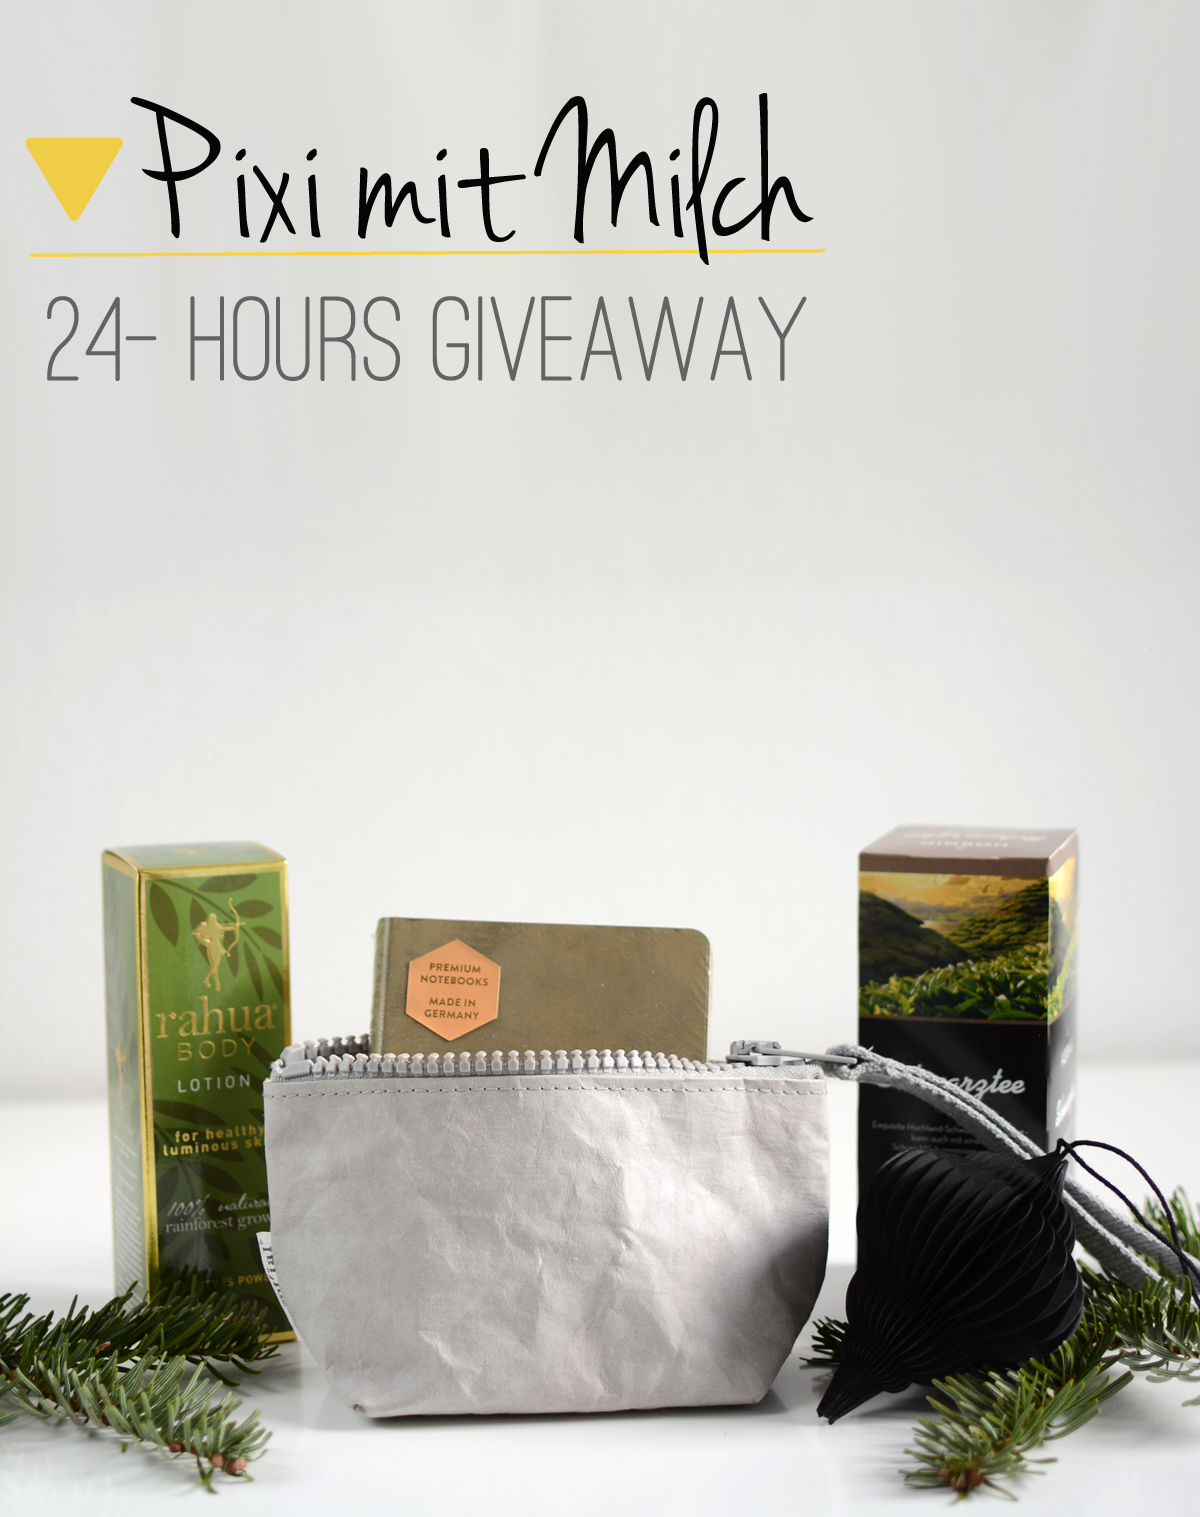 giveaway | pixi mit milch